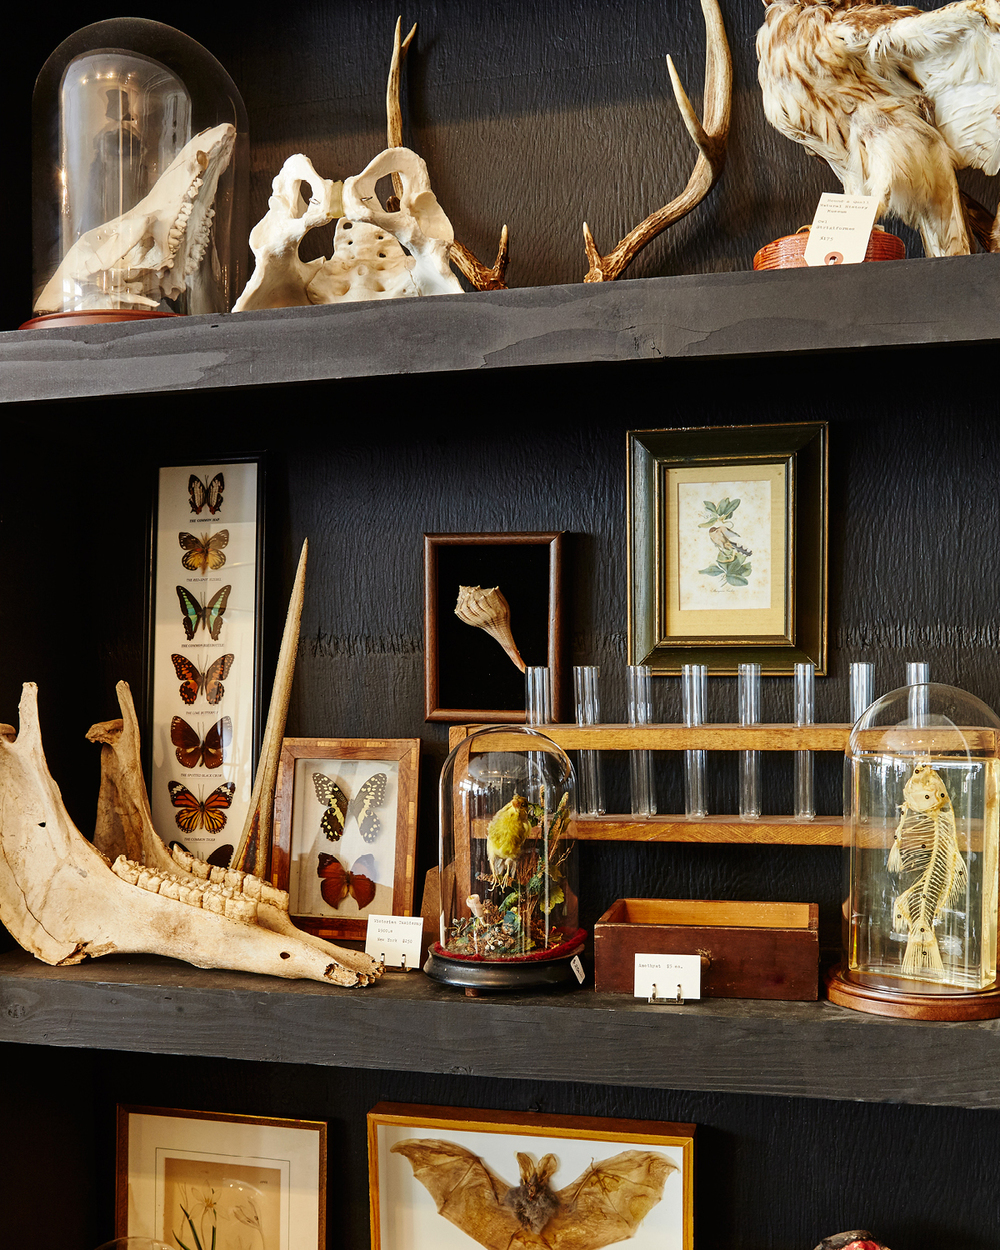 COLLECTIBLES AT HOUND & QUAIL